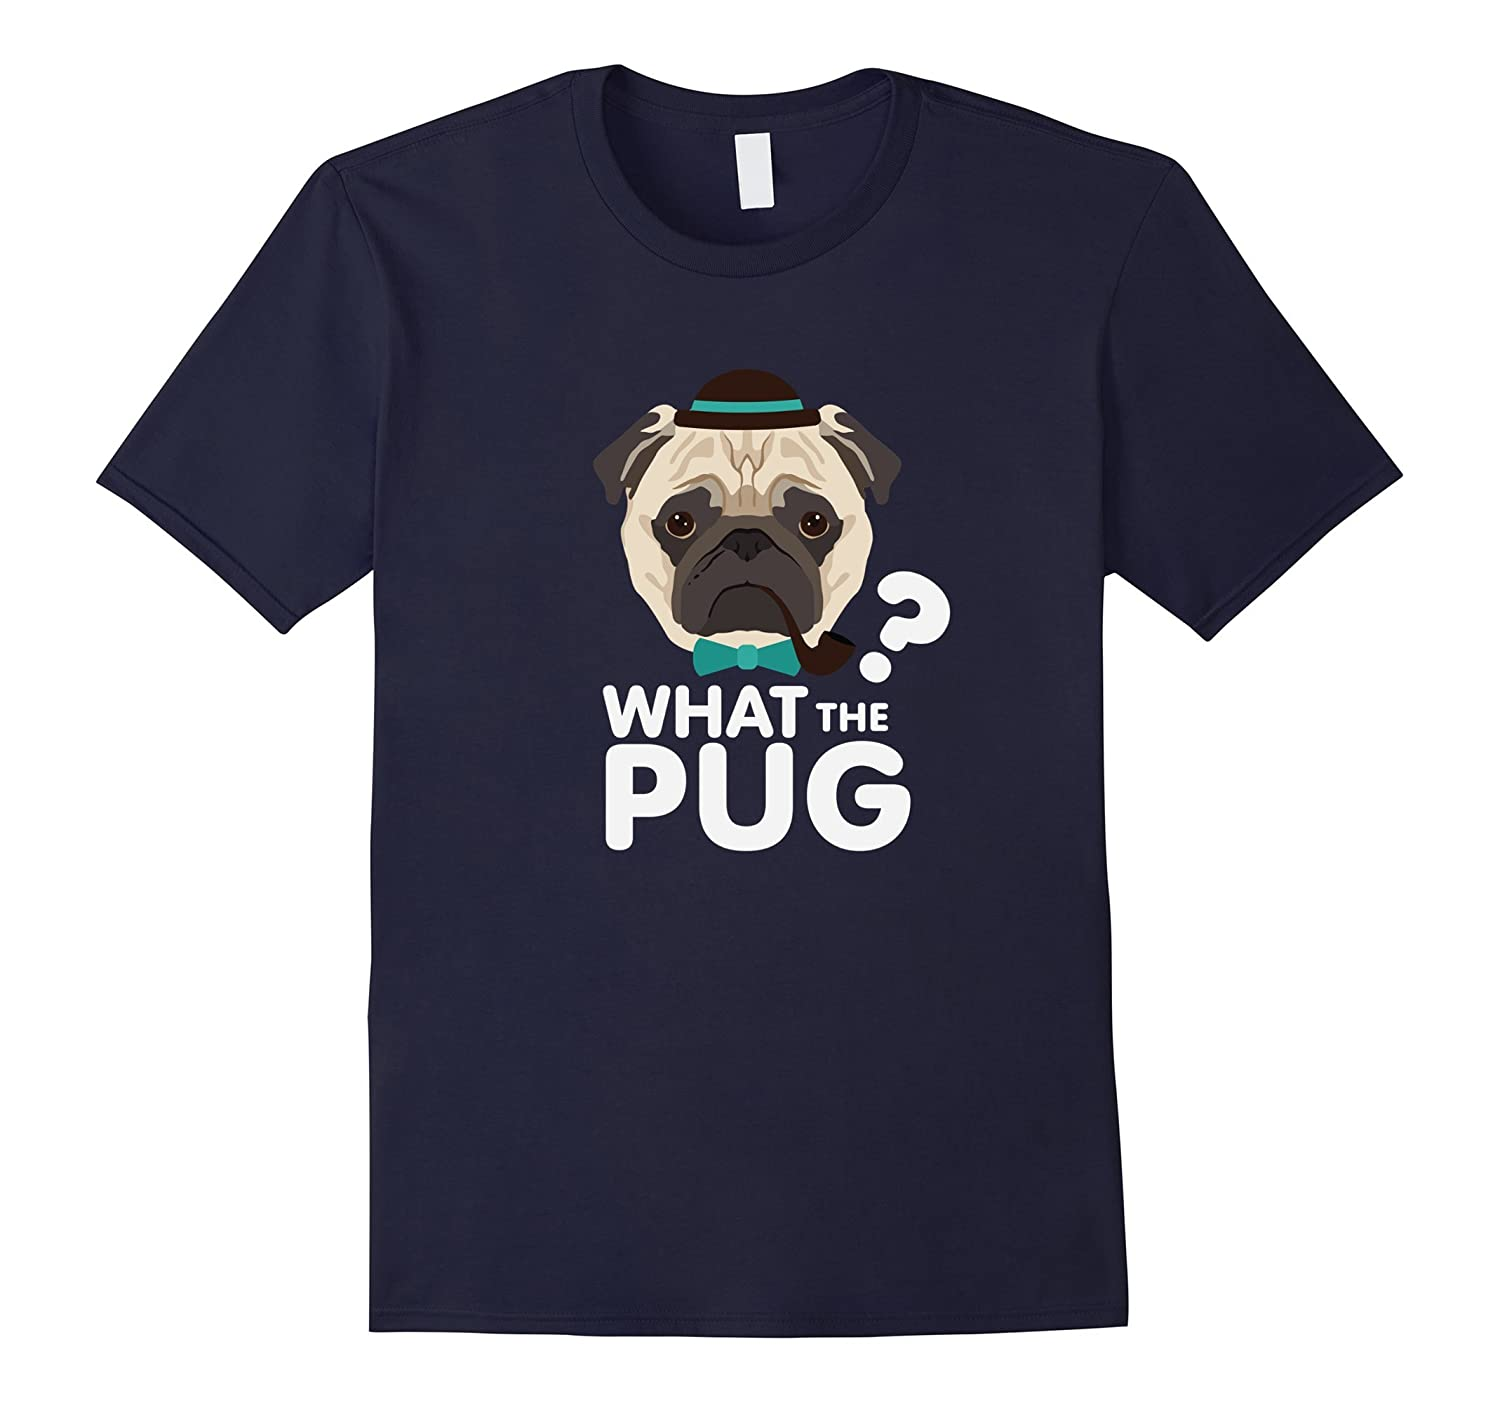 What the Pug Shirt Funny Dog Pun Gift Lover Pet Puppy tshirt